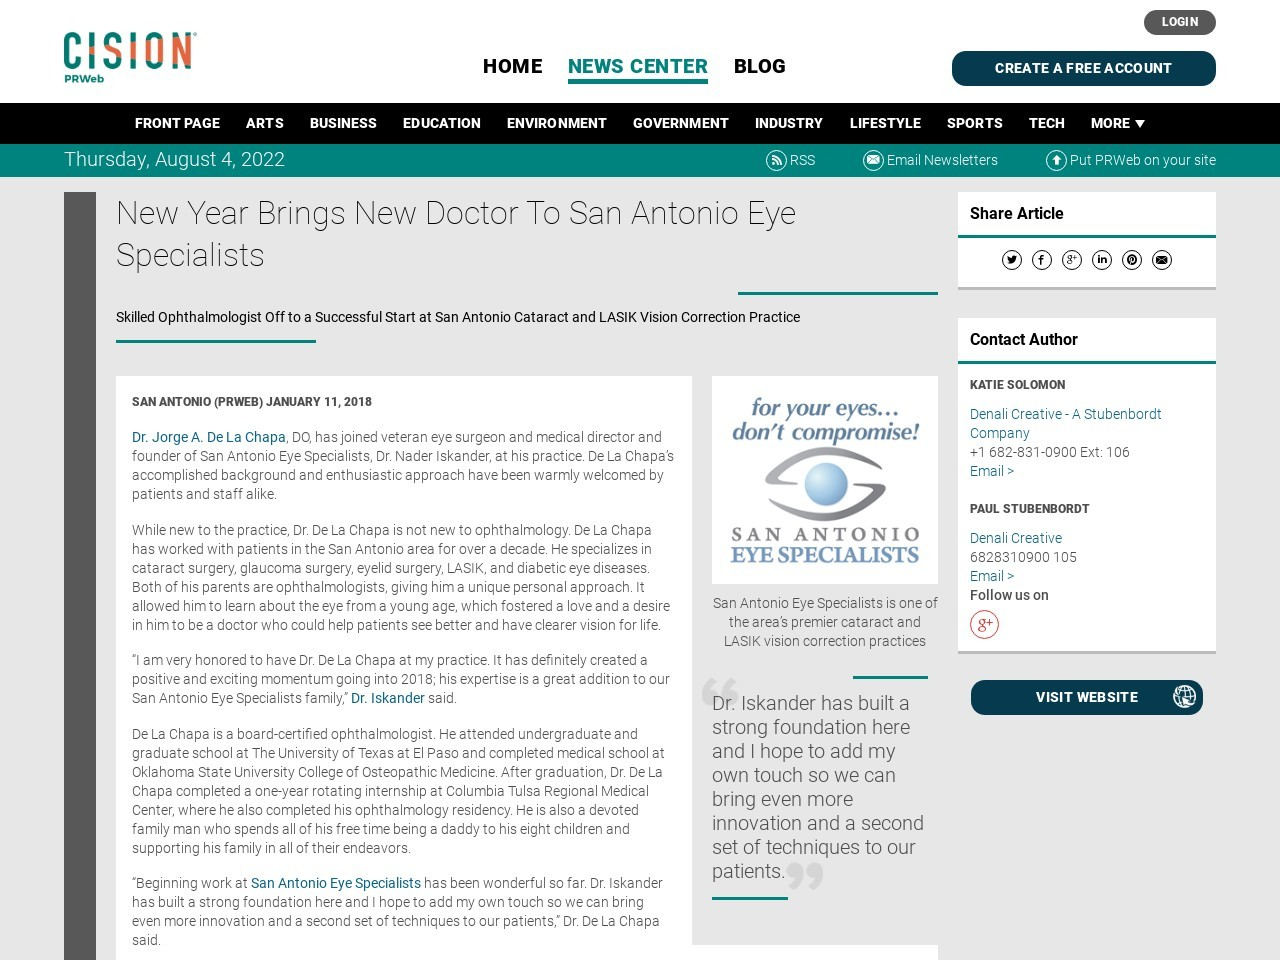 New Year Brings New Doctor To San Antonio Eye Specialists